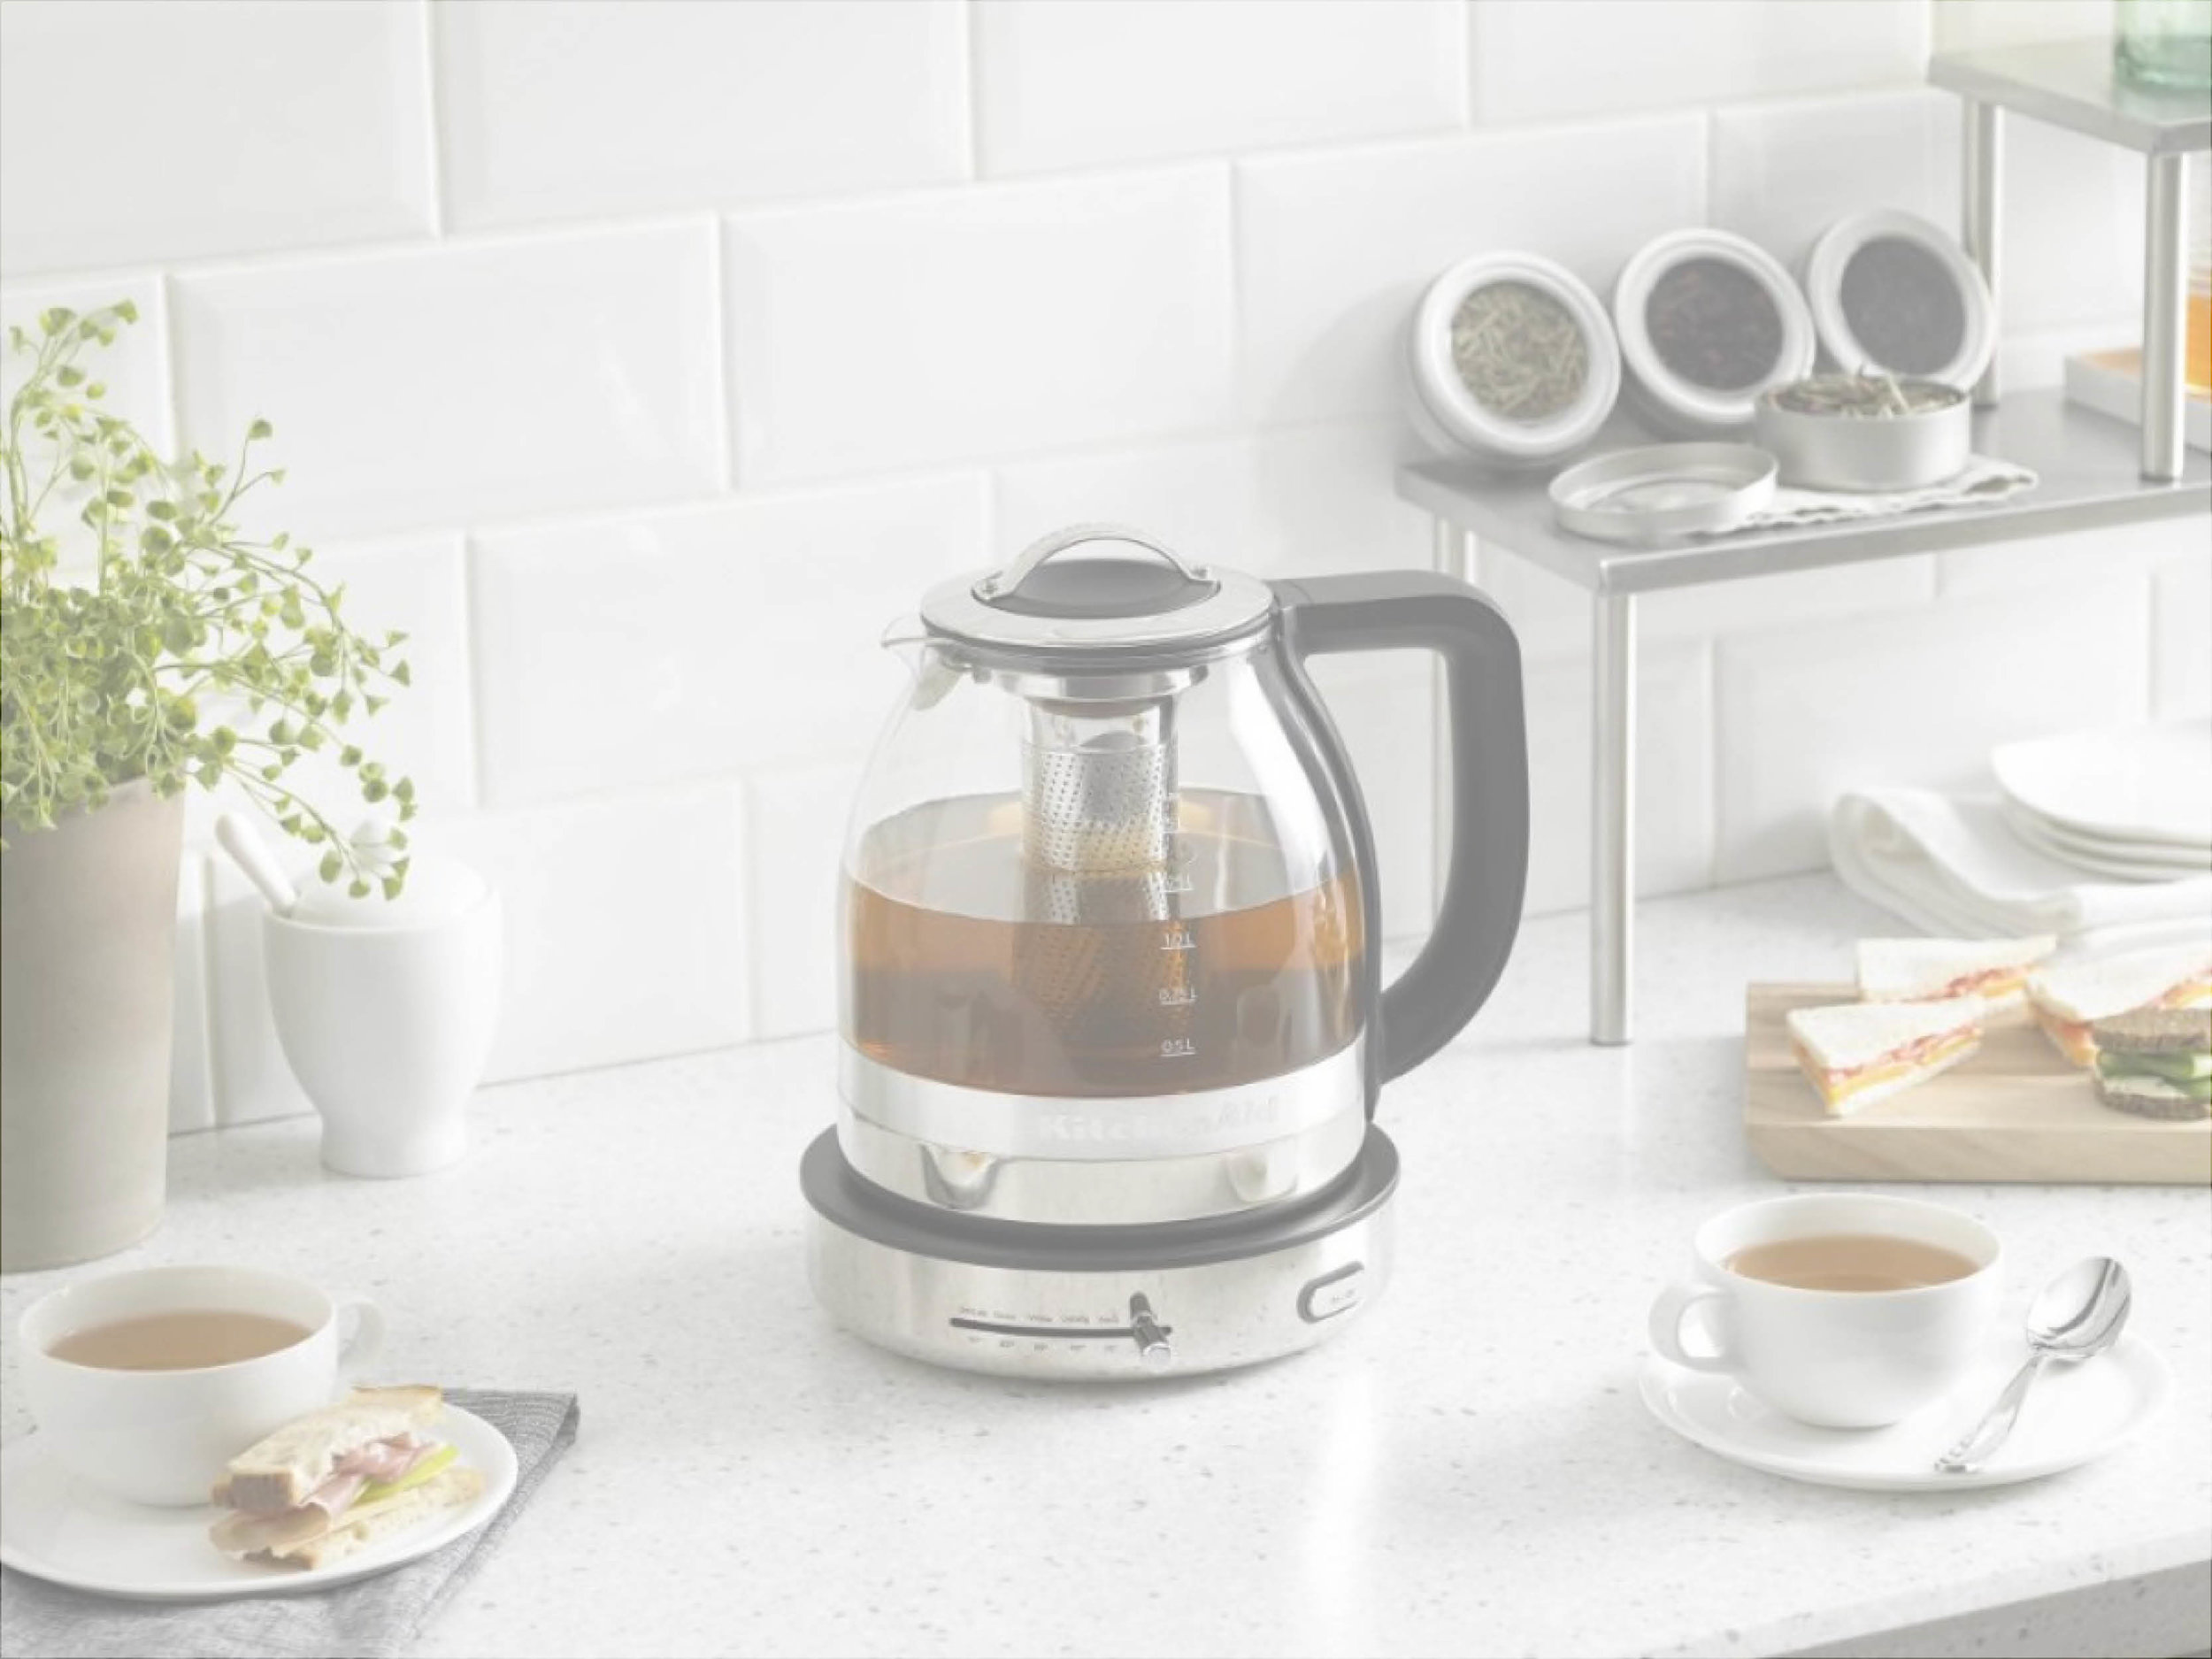 Why is such a simple task so frustrating? - Current controls for electric tea kettles are frustrating. The limited presets on some electric tea kettles allow for little customization. The only alternative is selecting the temperature with up and down arrows, one degree at a time. Neither option is simple or efficient.